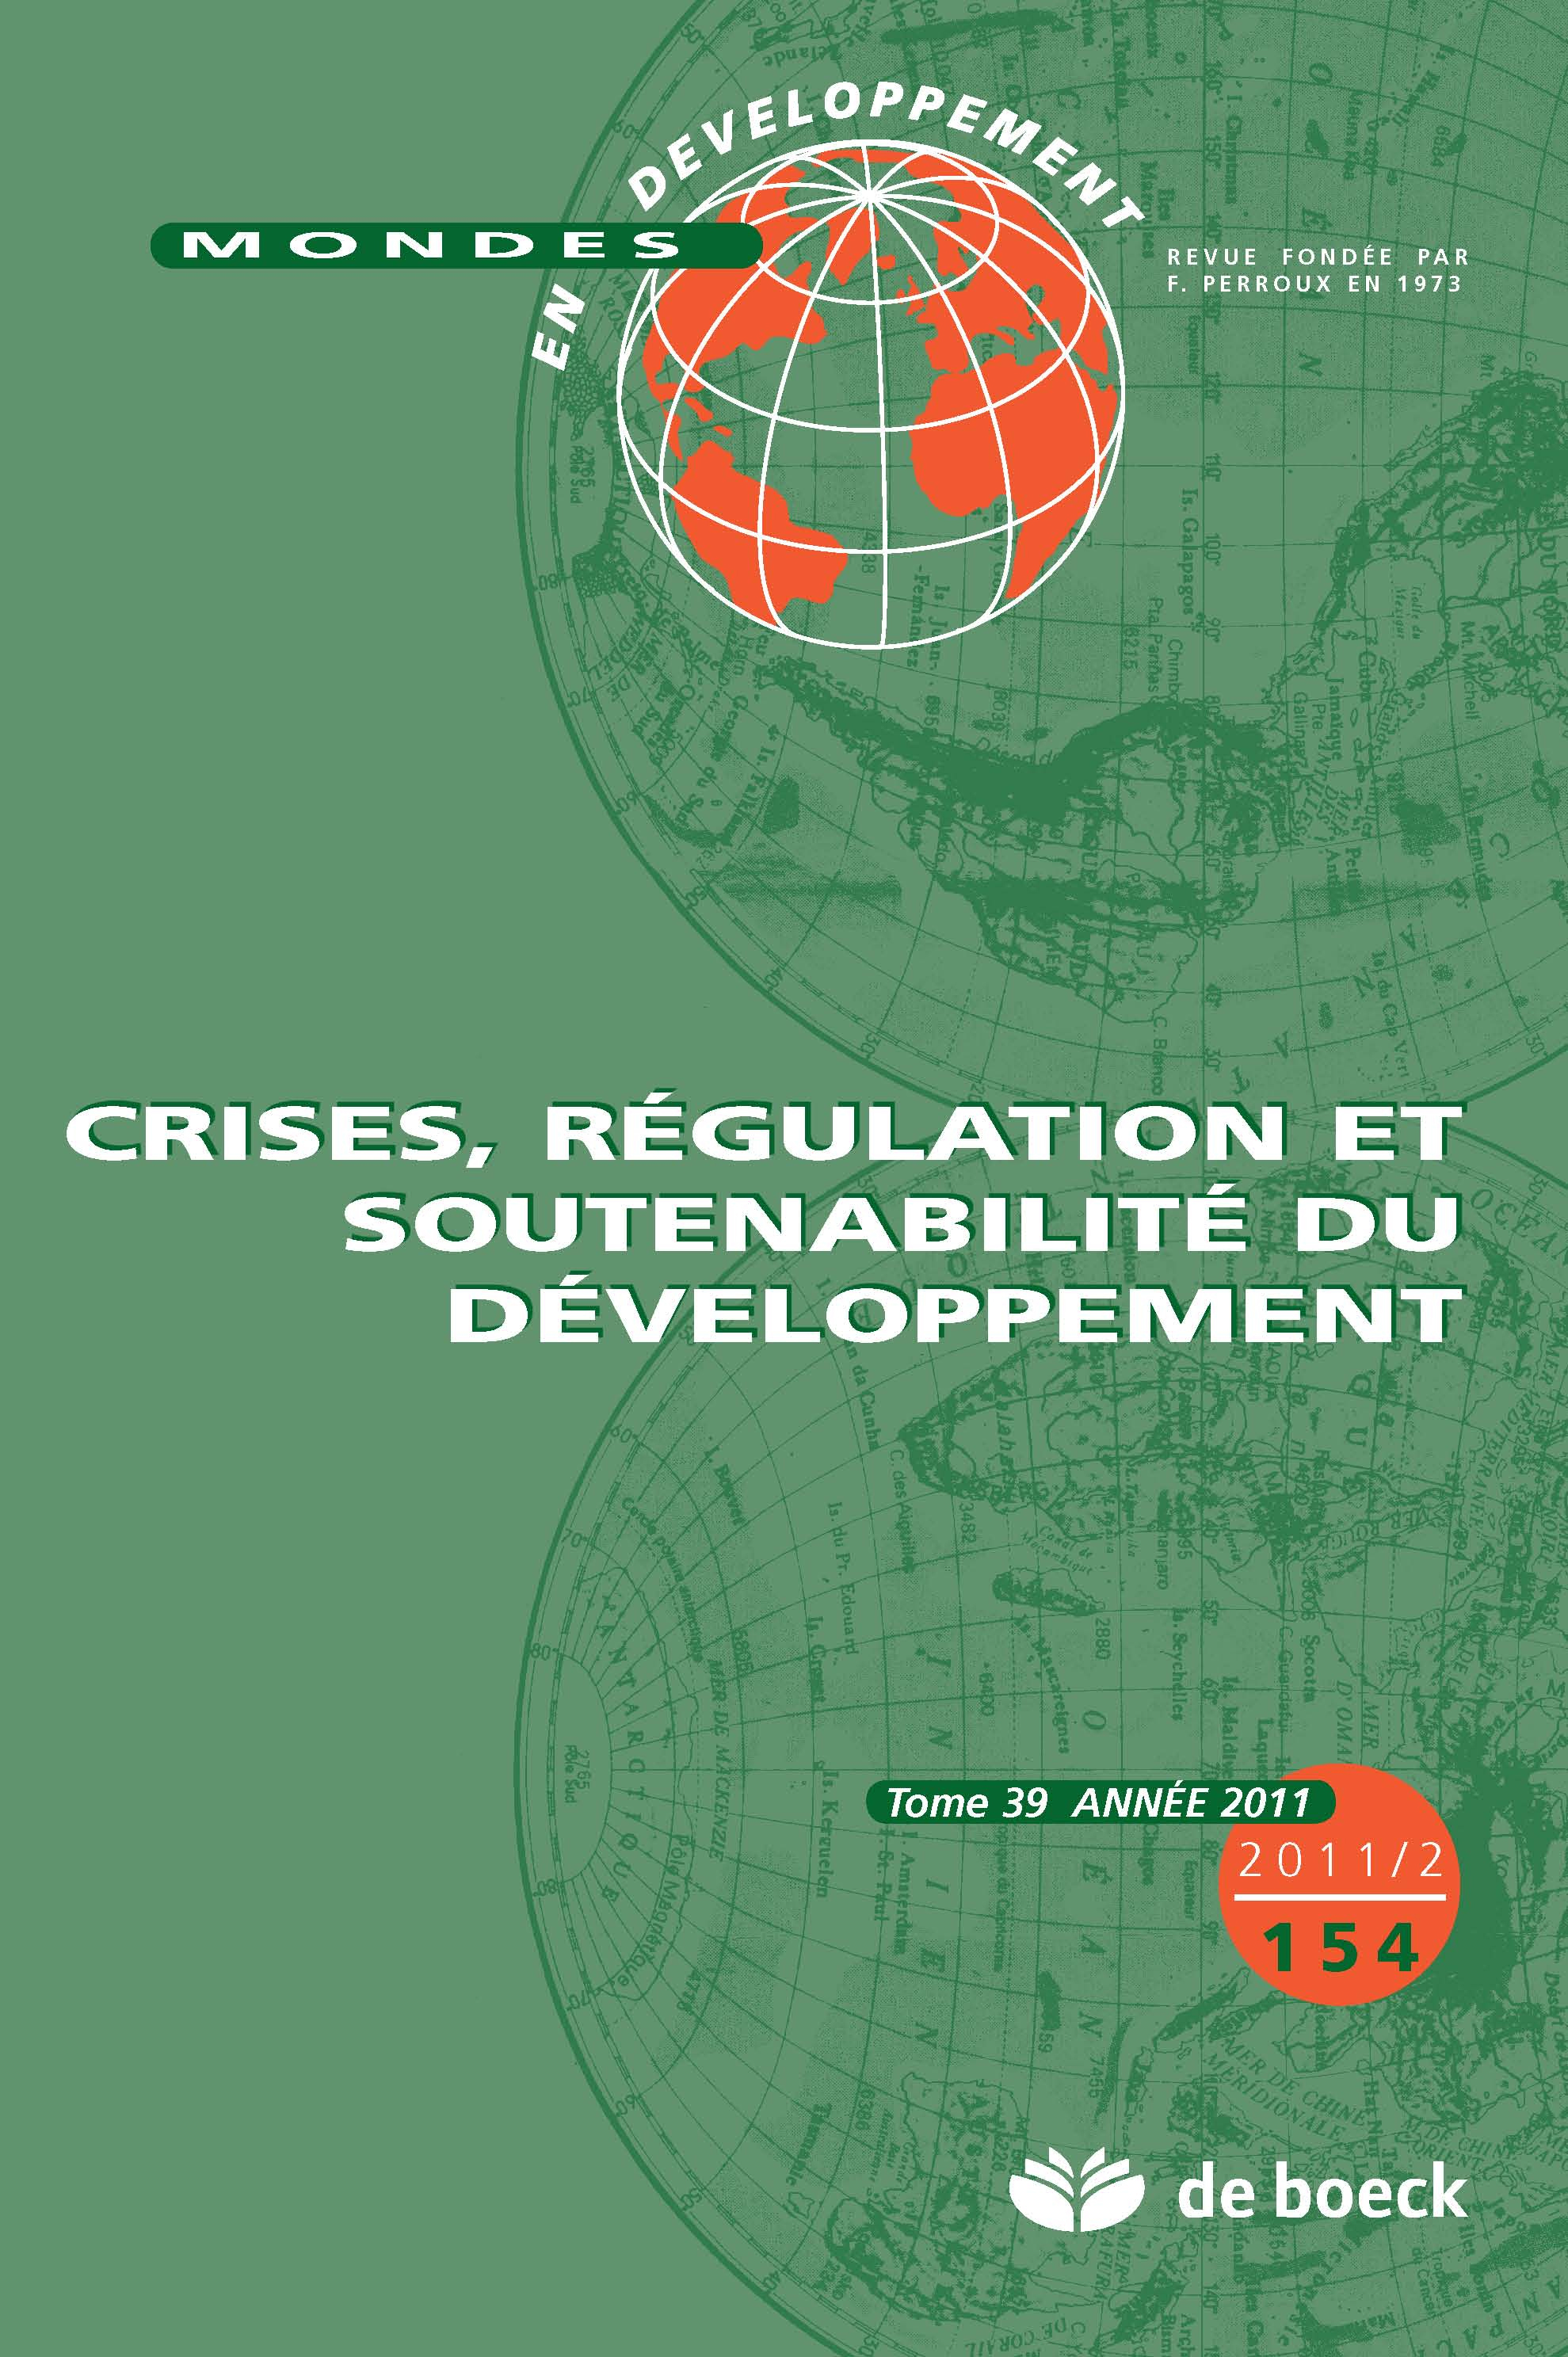 MONDES EN DEVELOPPEMENT 2011/2 N.154 CRISES REGULATION SOUTENABILITE DU DVT